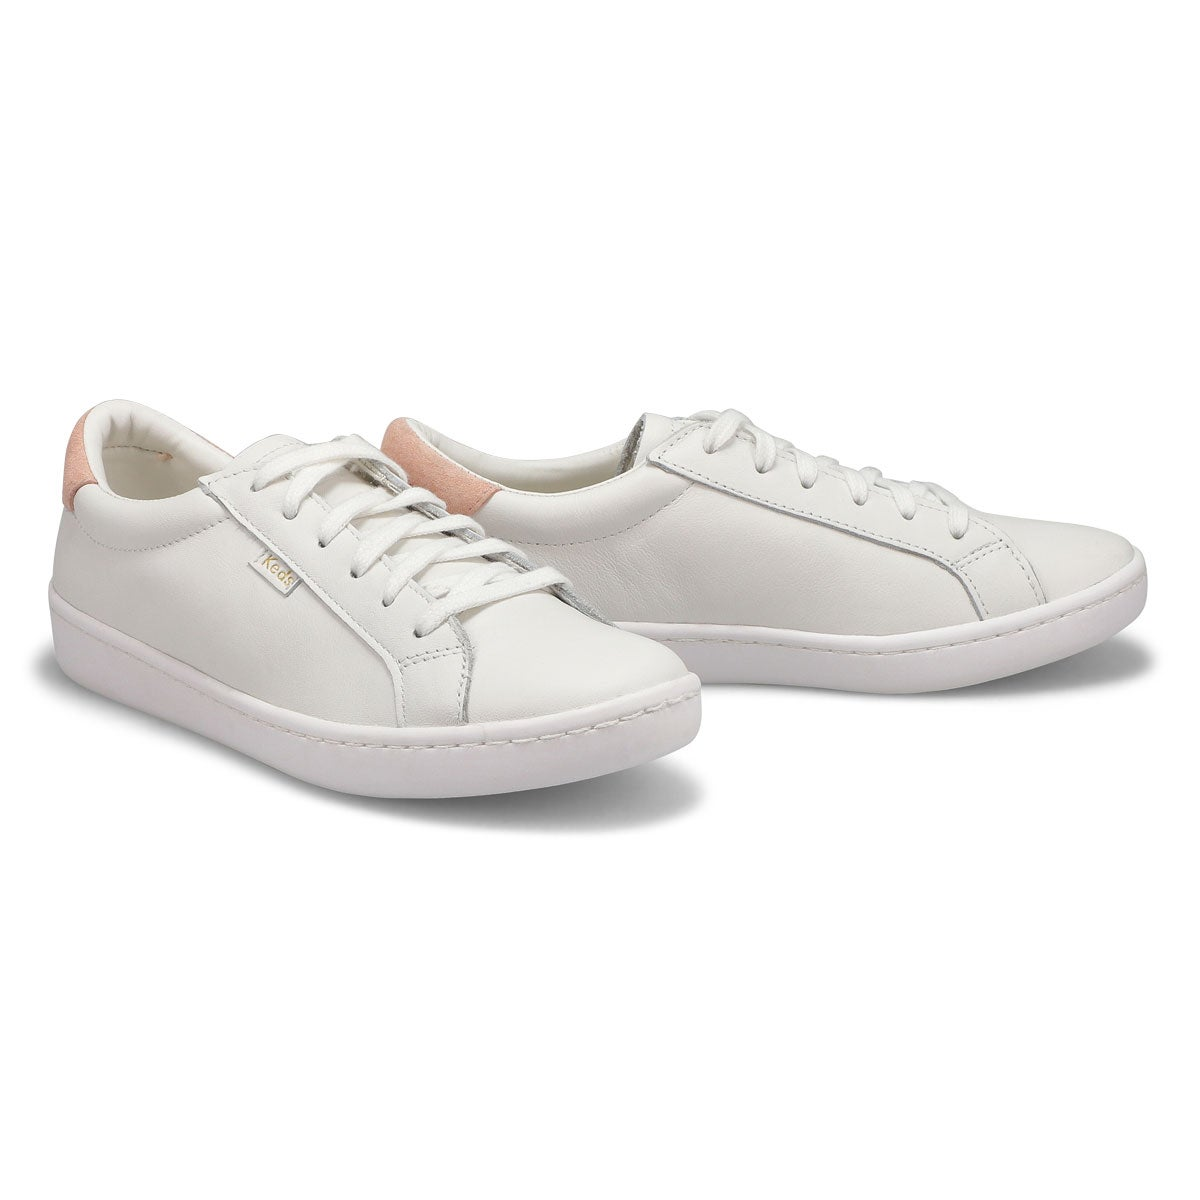 Lds Ace white/blush leather sneaker